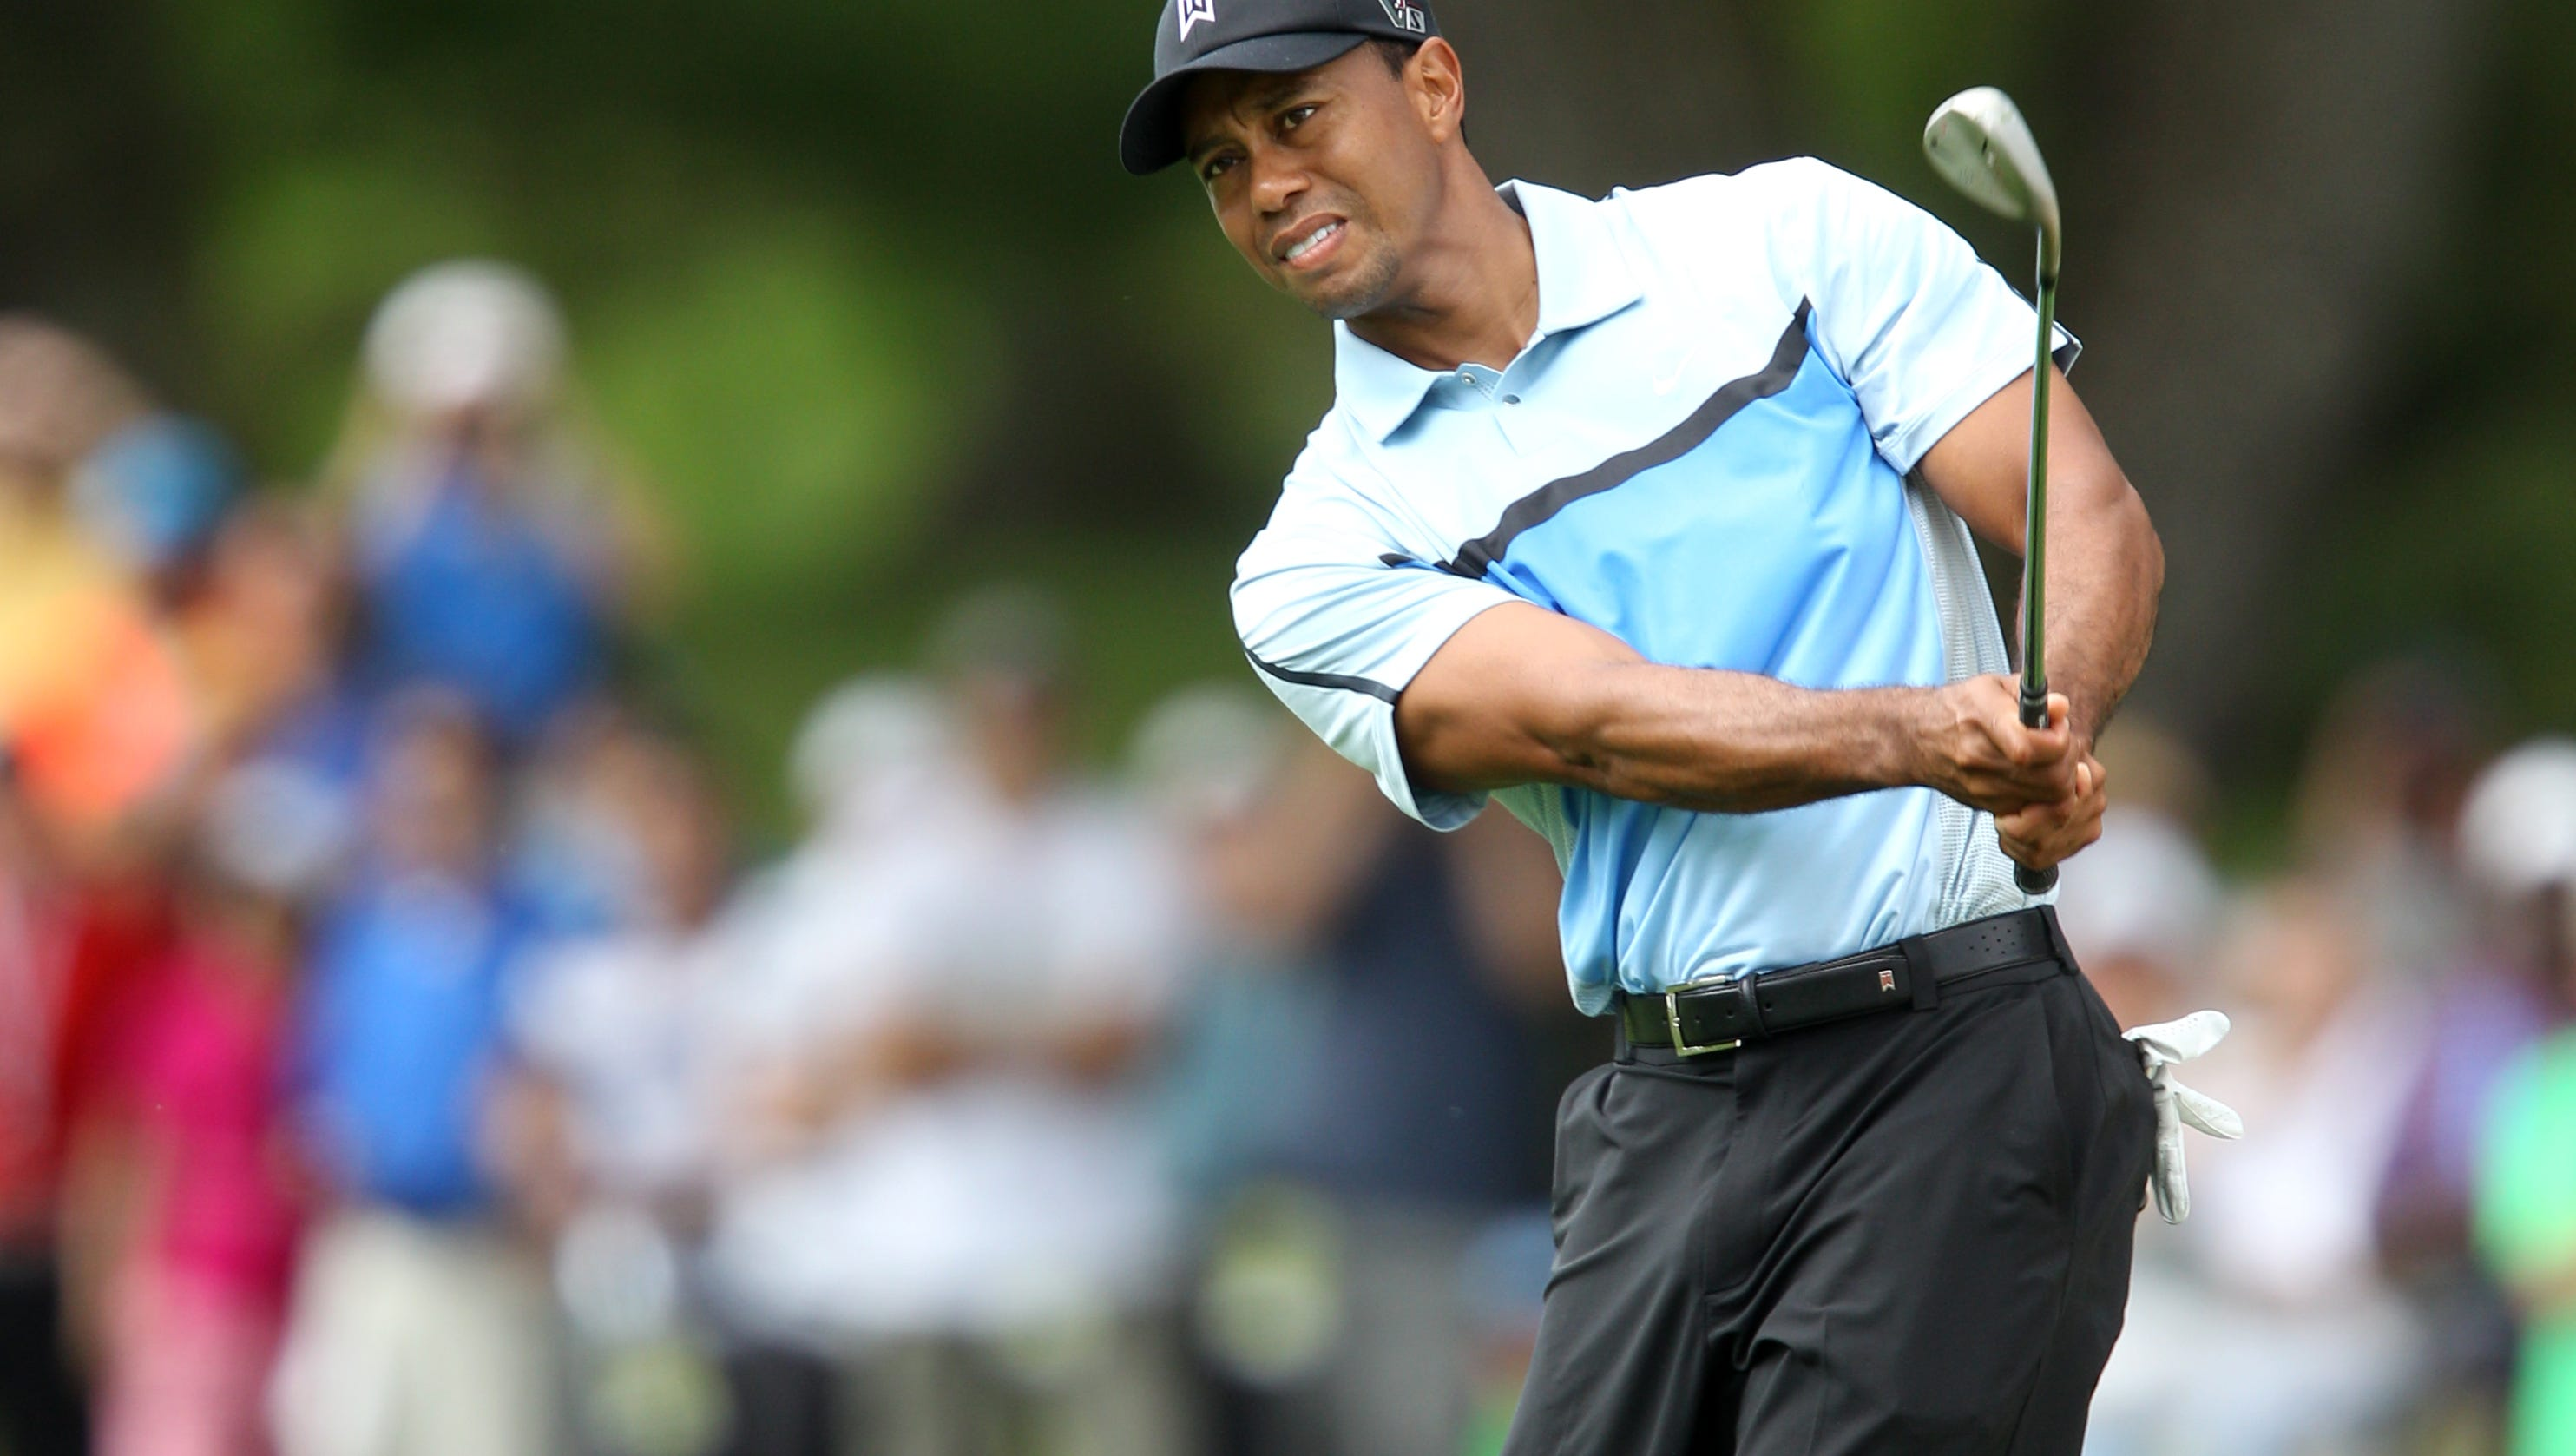 Tiger Woods watches his chip shot to 17 during the first round of the 95th PGA Championship at Oak Hill in Pittsford, NY August 8, 2013. He made birdie on 17.